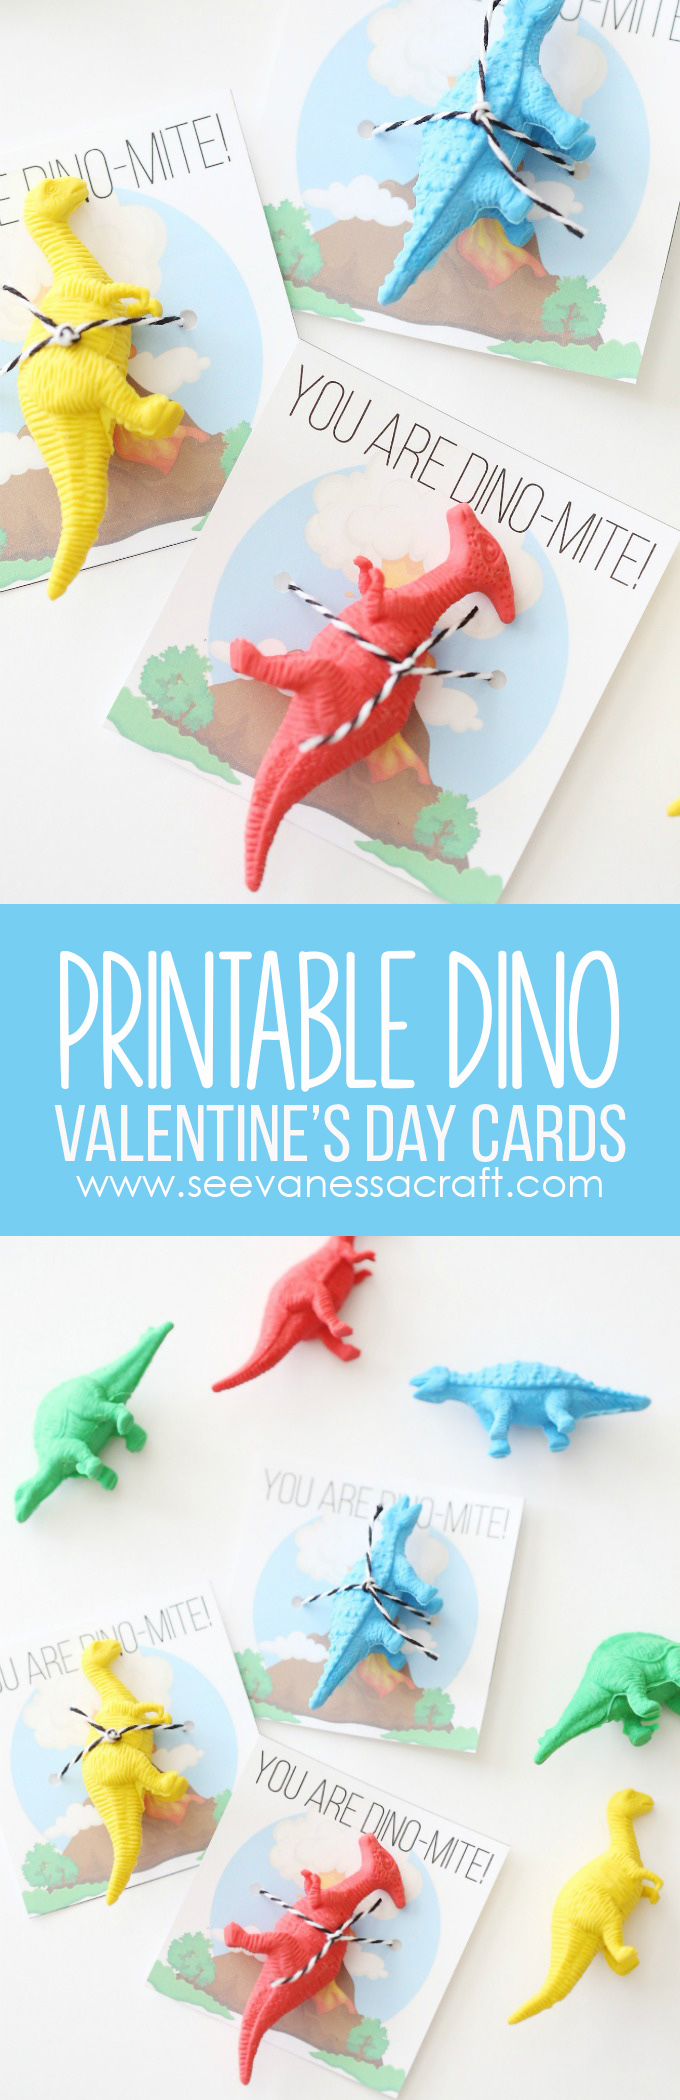 Printable Dinosaur Valentines Day Cards for Kids